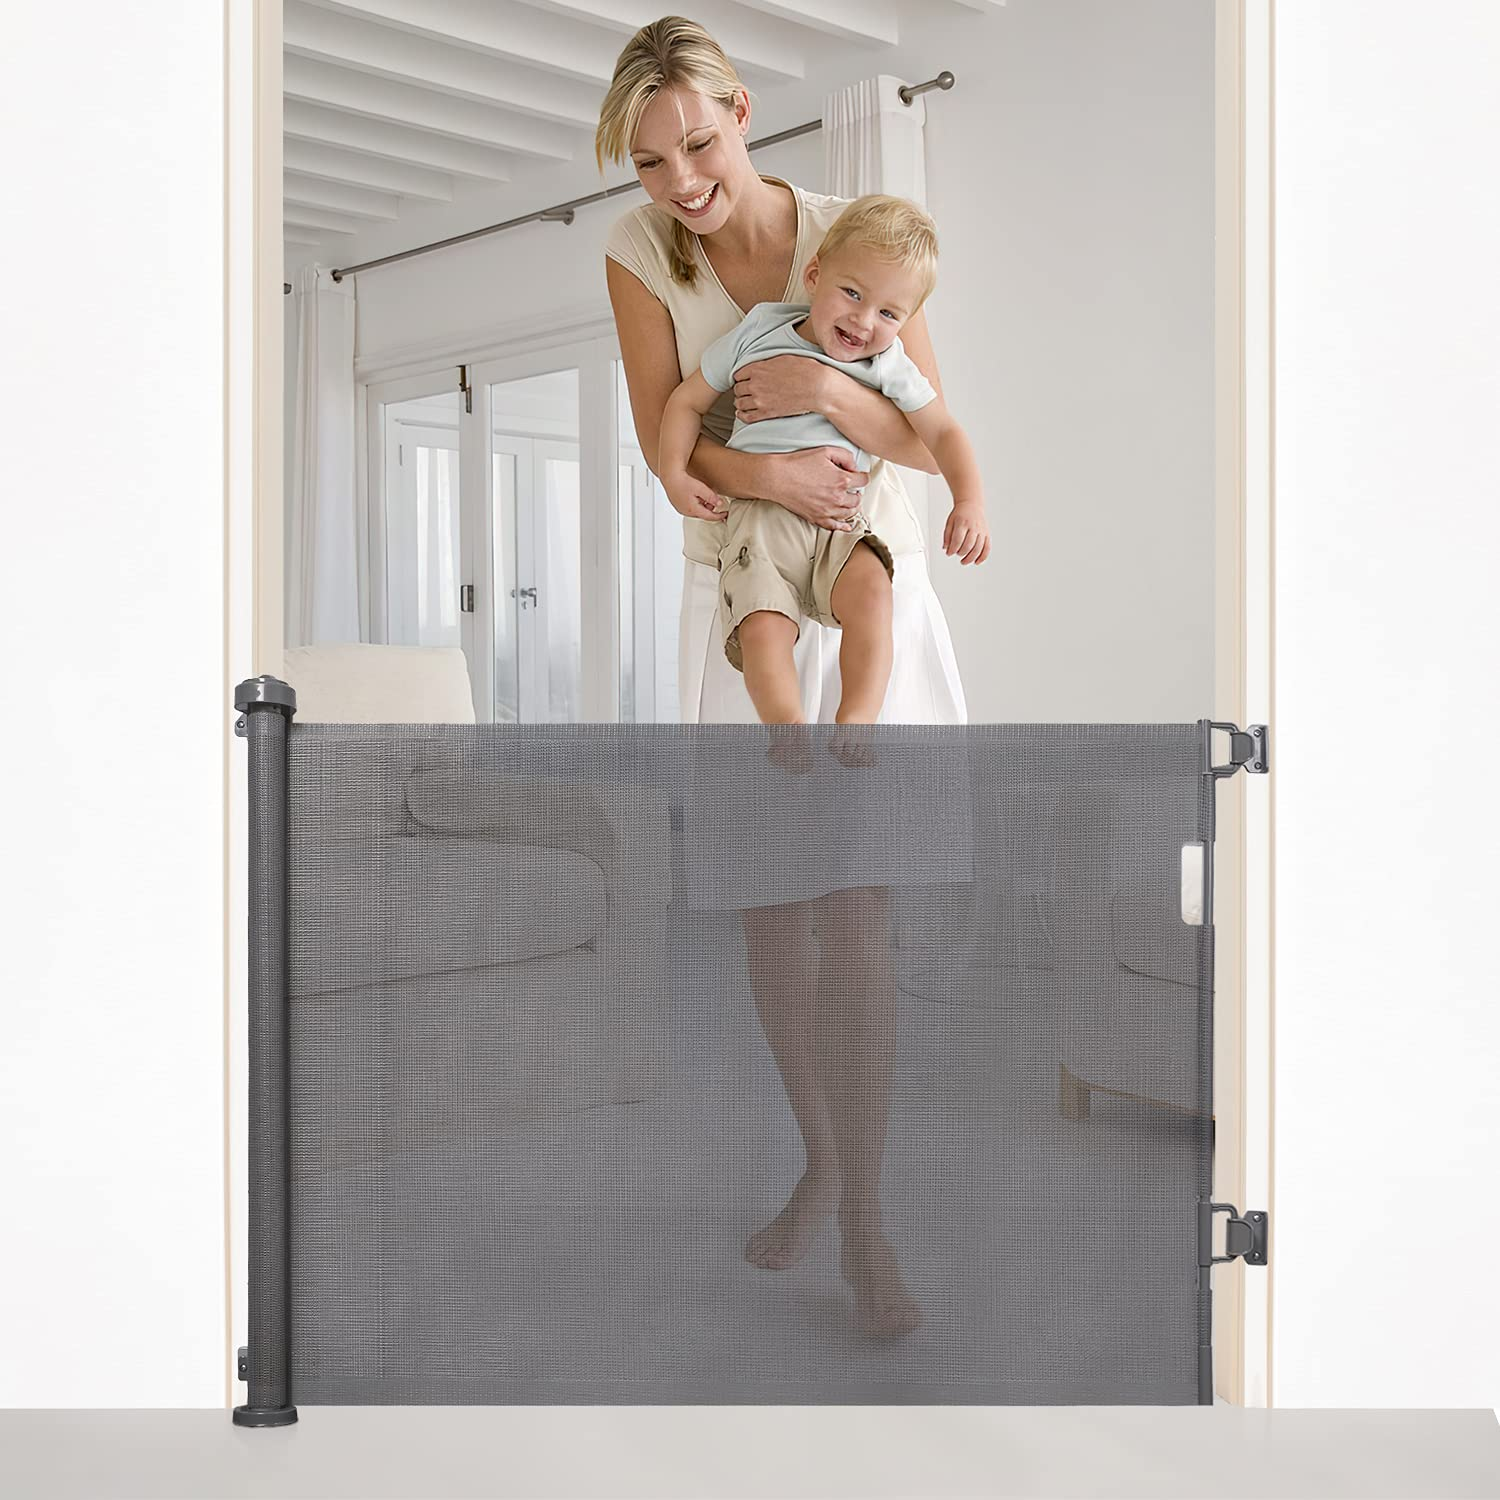 Retractable Baby Gate for doorways,Extra Wide Safety Kids or Pets Gate,34